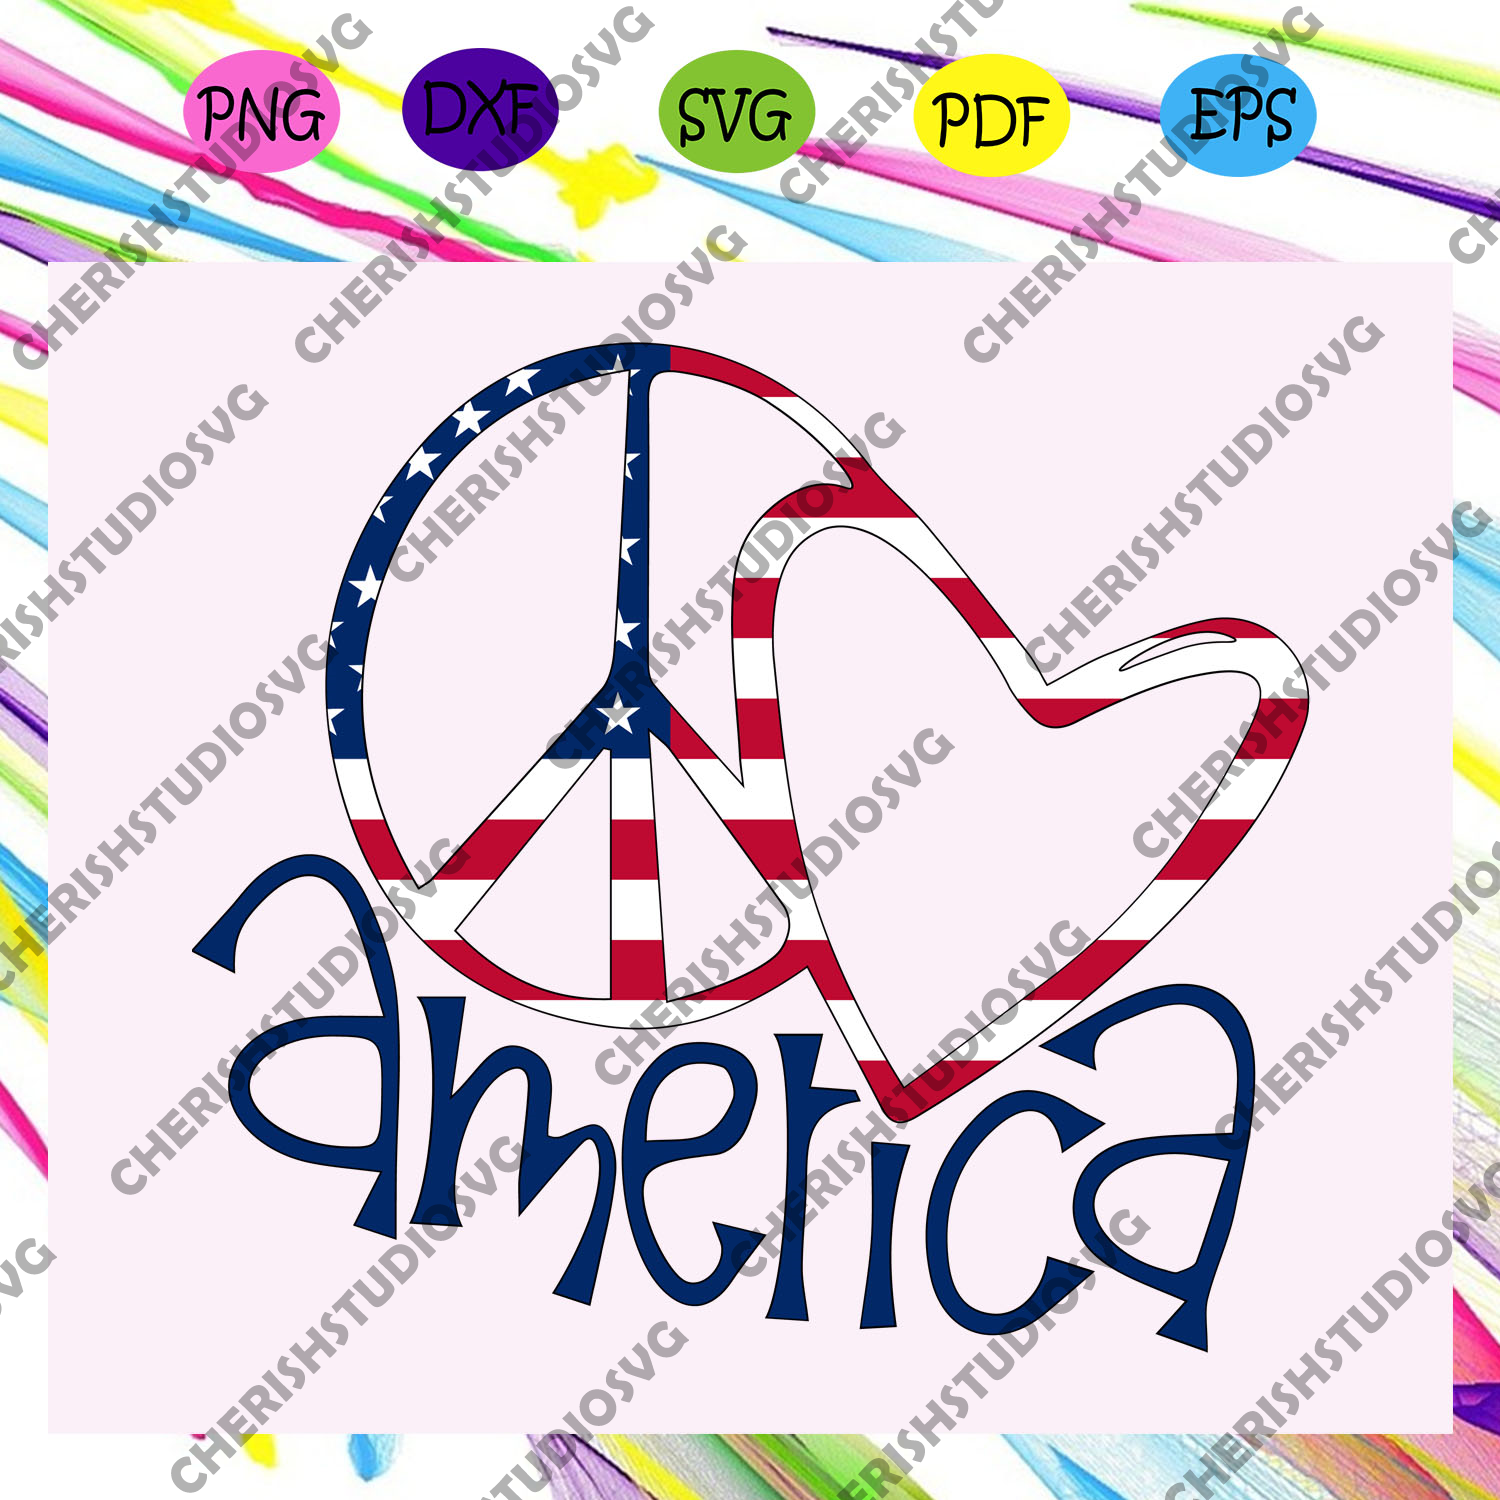 America heart, American Svg, 4th Of July Svg, Fourth Of July Svg, Patriotic American Svg, Independence Day Svg, Memorial Day, Files For Silhouette, Files For Cricut, SVG, DXF, EPS, PNG, Instant Download